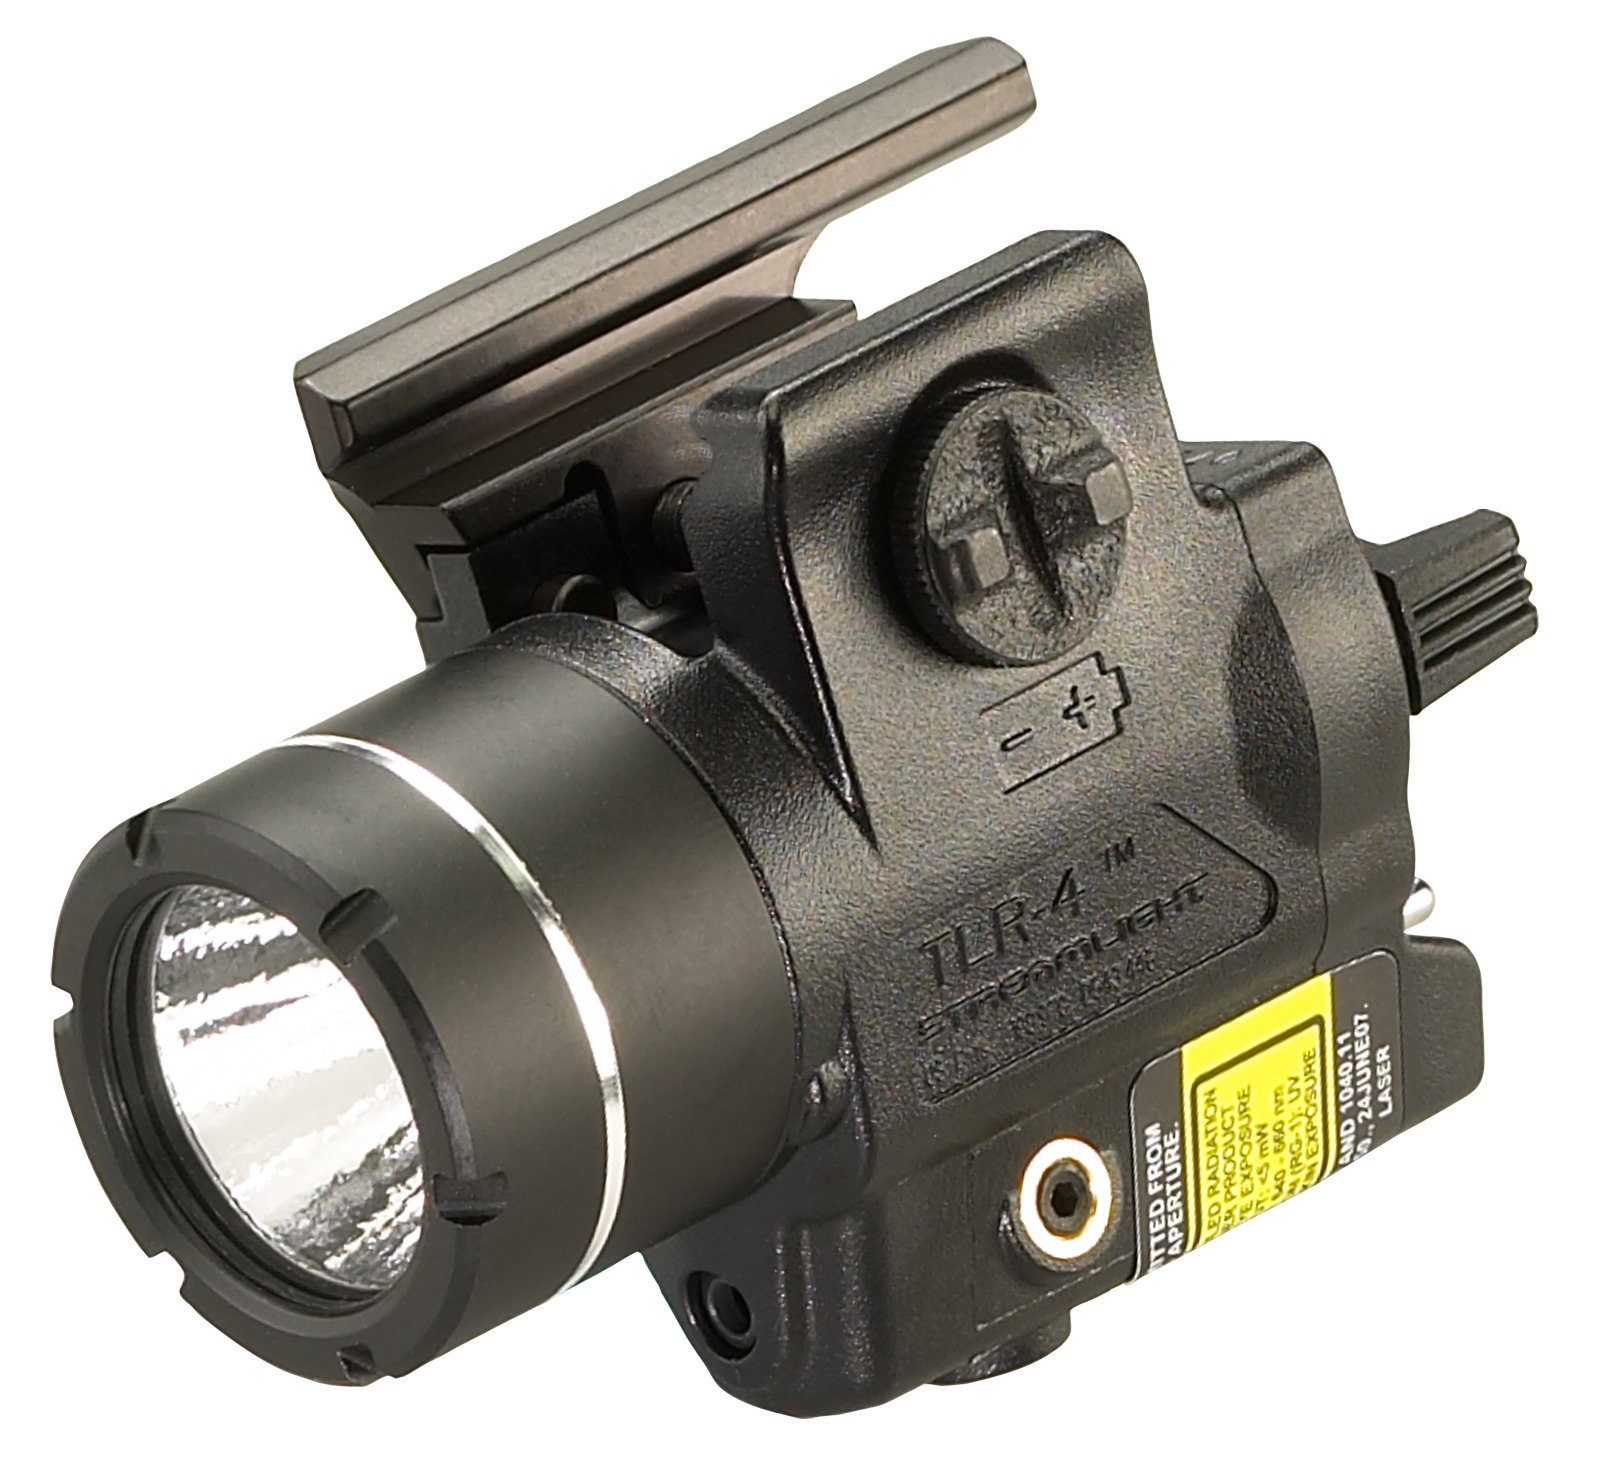 Streamlight 69246 TLR-4 H&K USP Compact Rail Mounted Tactical Light with Integrated Green Laser and Wide Operating Range by Streamlight